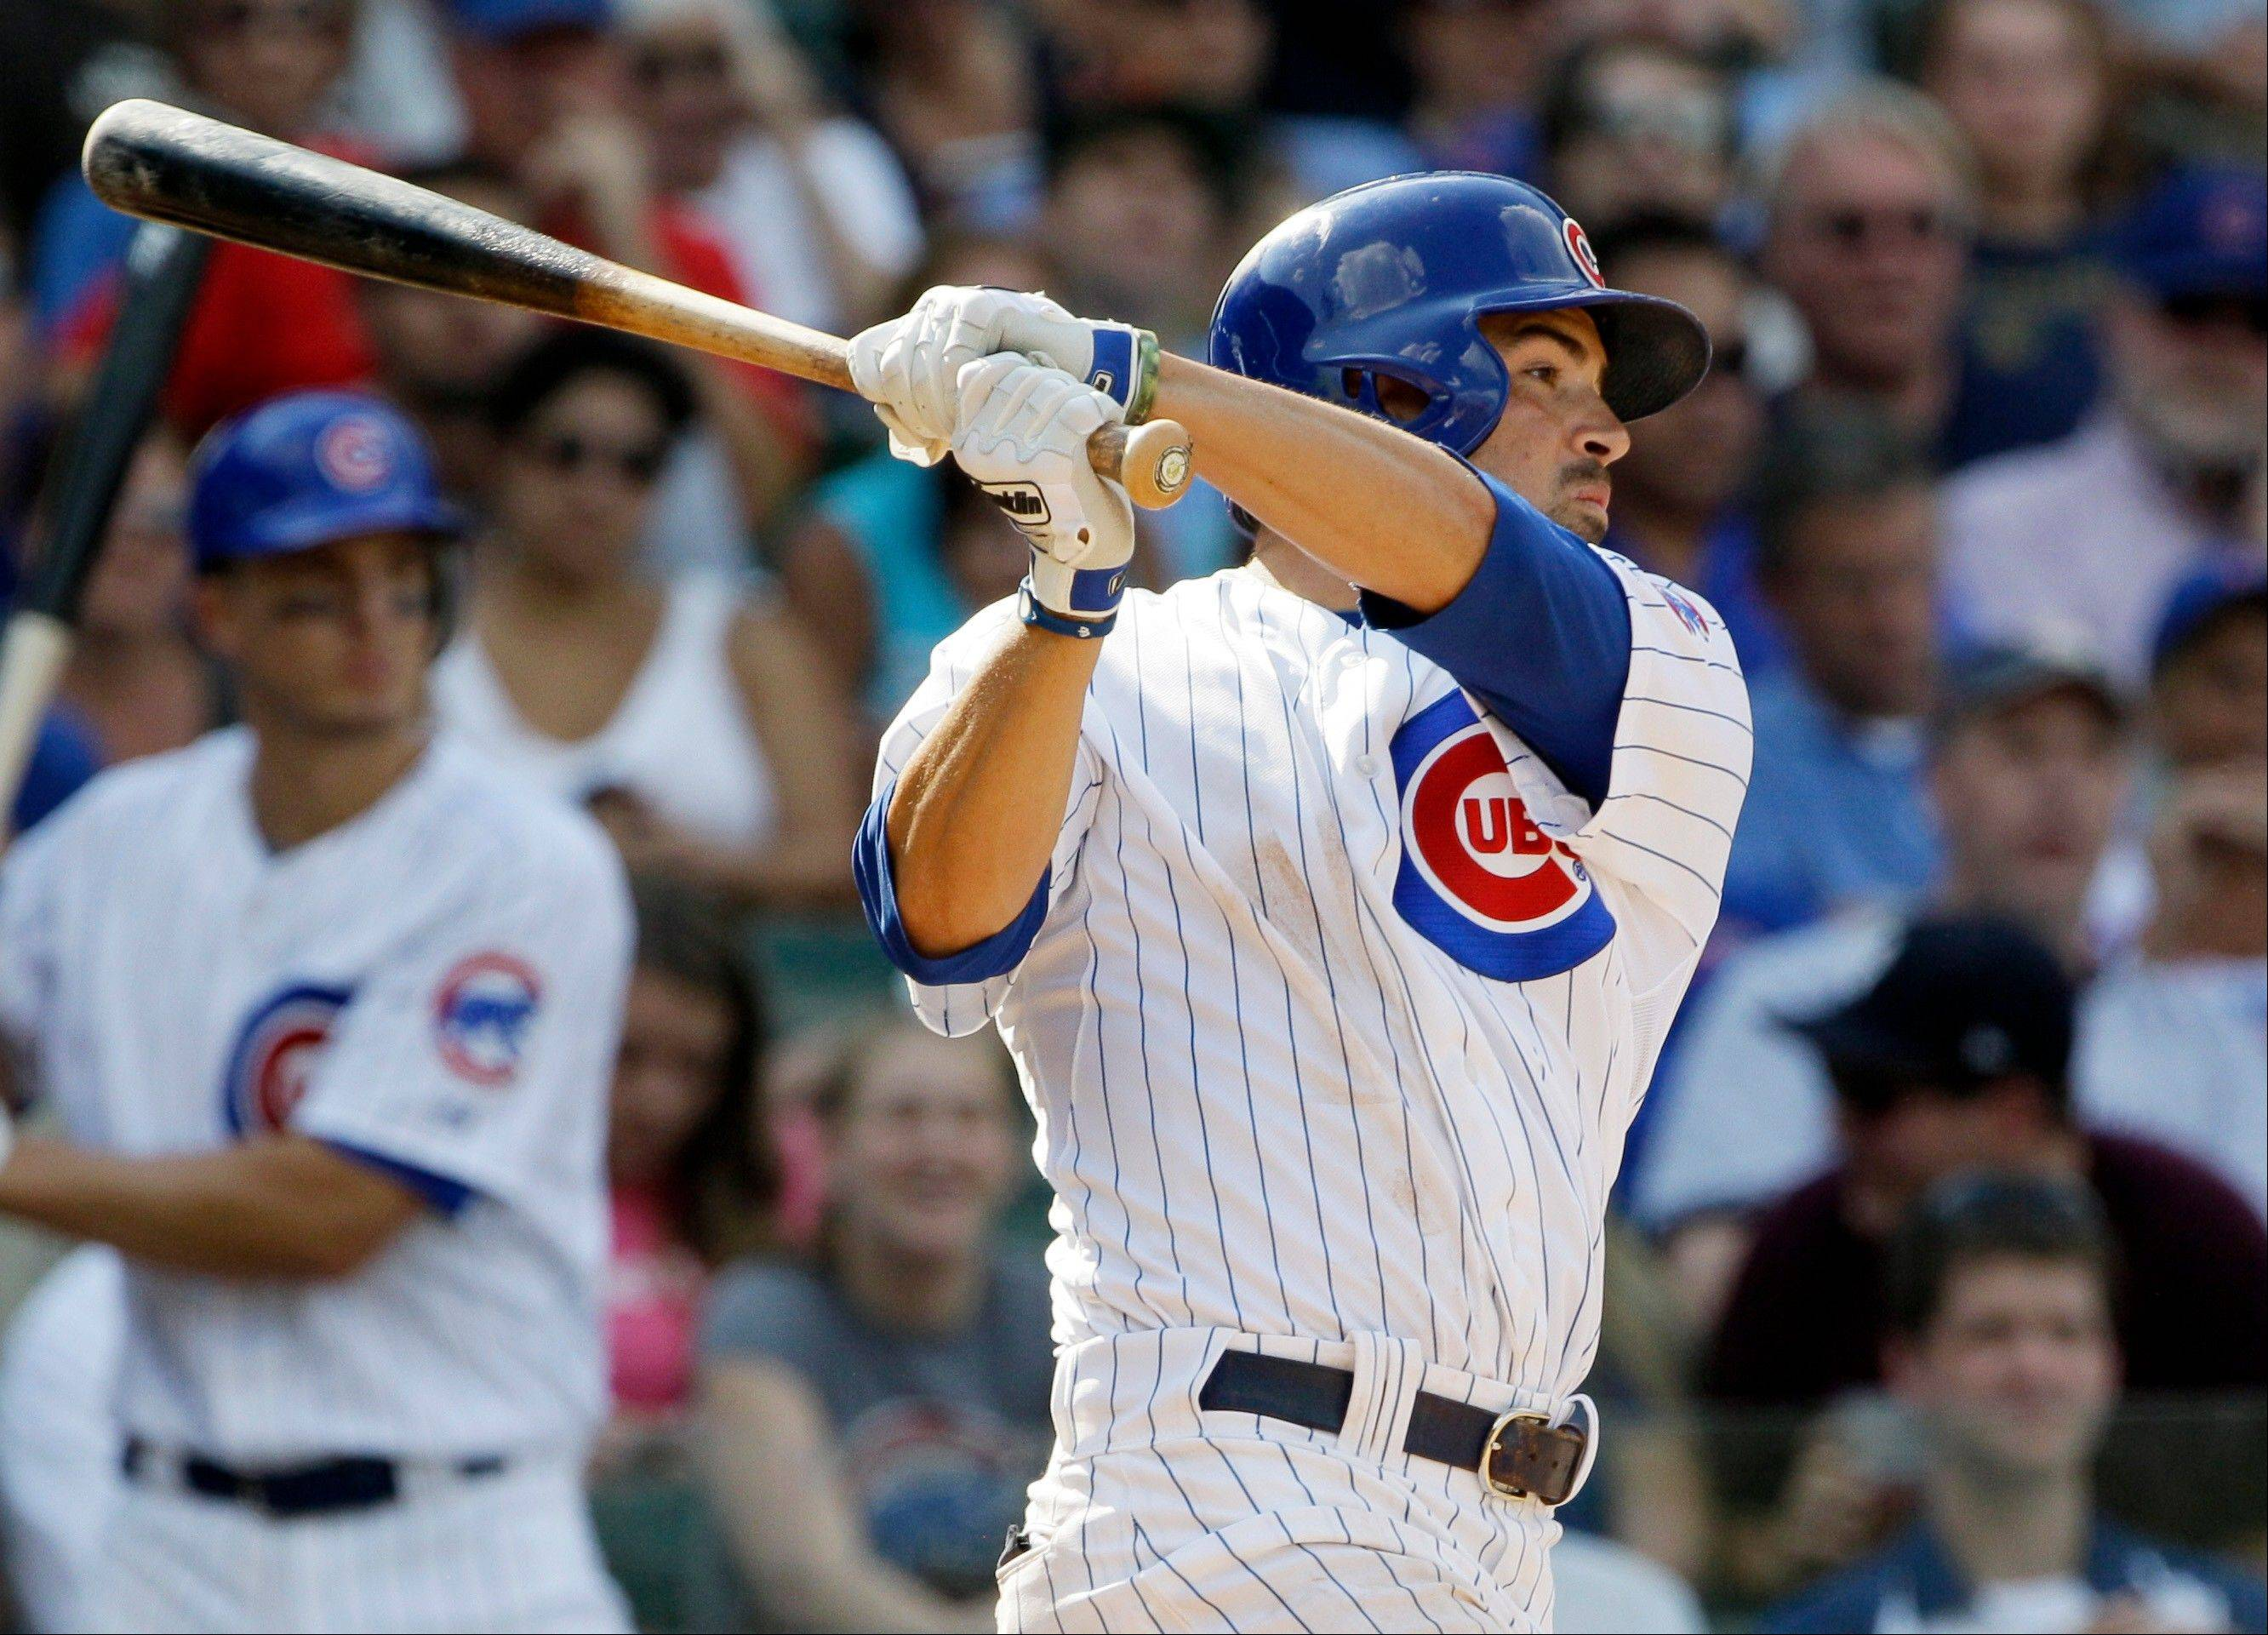 Chicago Cubs' David DeJesus hits a single against the Houston Astros during the eighth inning of a baseball game in Chicago, Wednesday, Aug. 15, 2012.